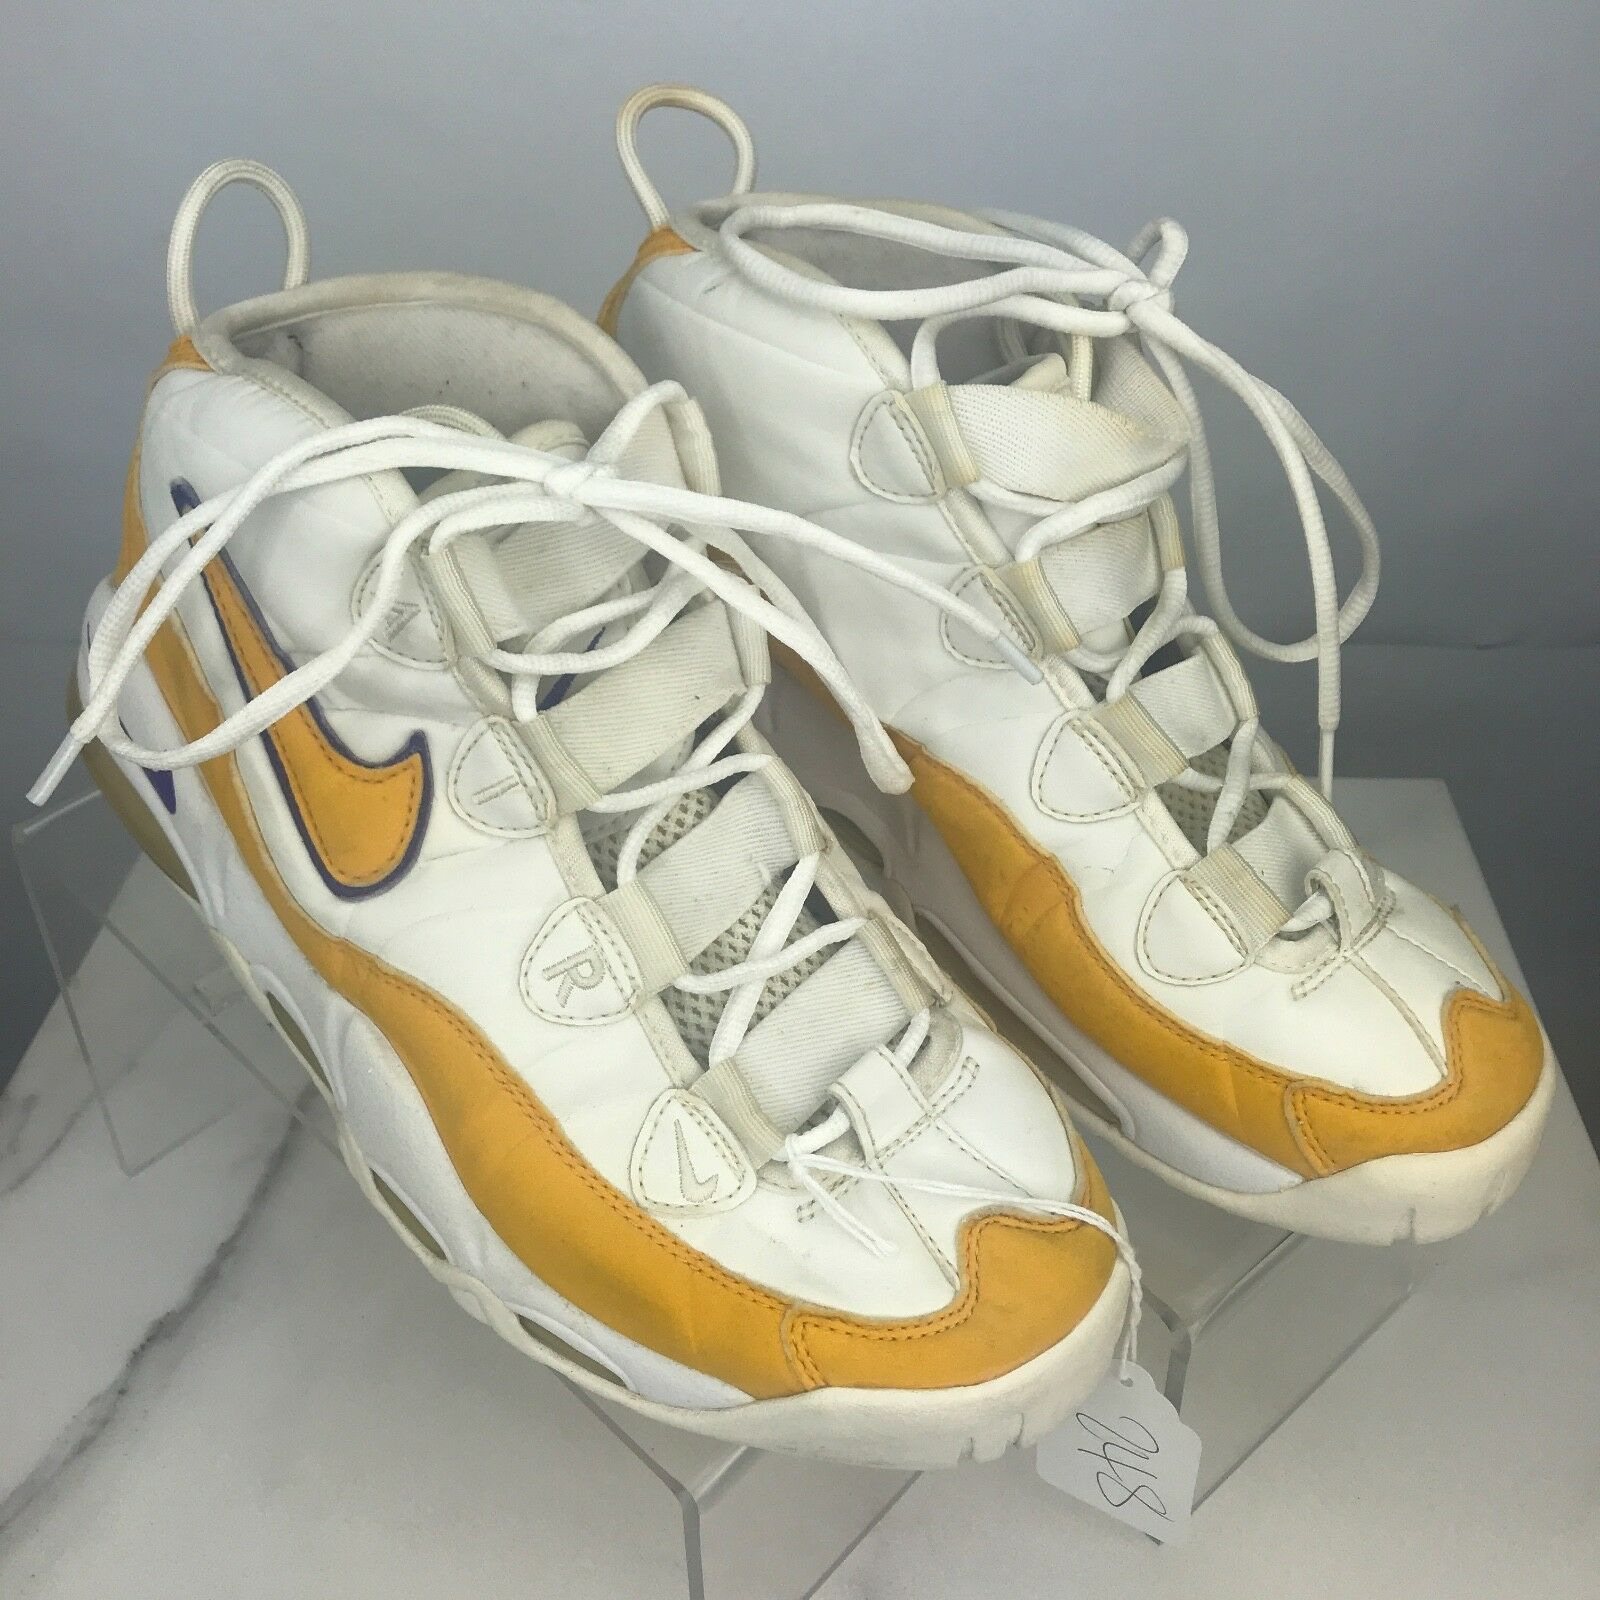 Nike 2003 Air Max Uptempo Del Sol Derek Fisher Lakers 624011-711  Size 8.5